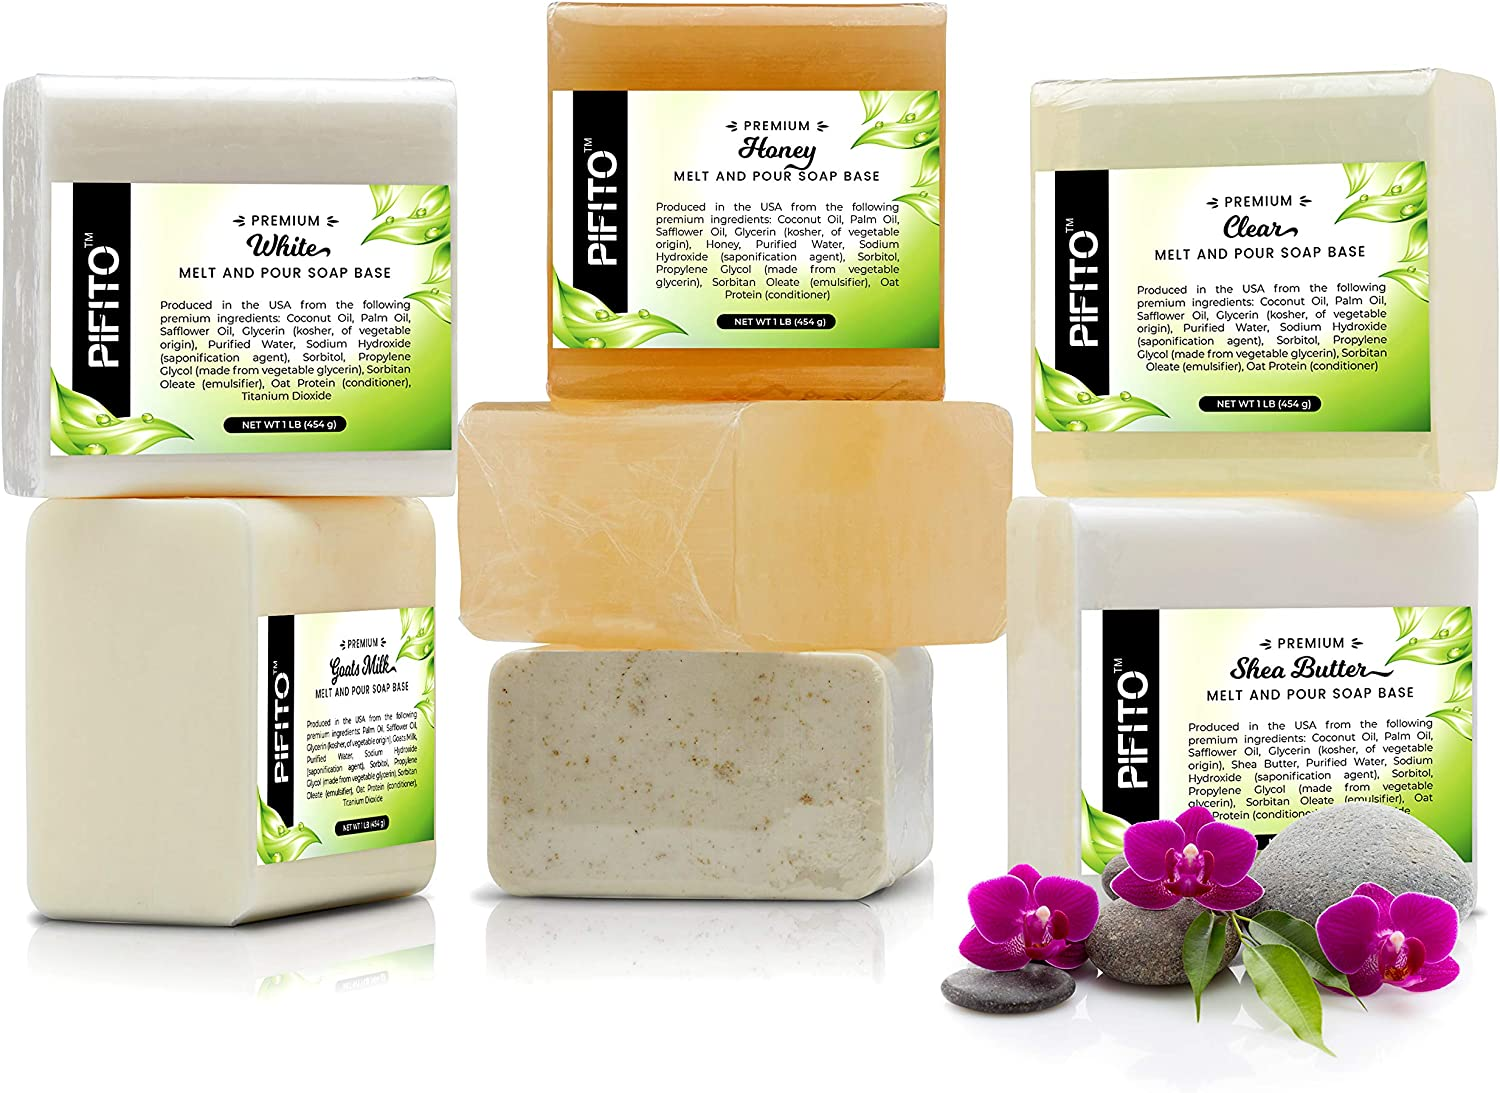 Pifito Melt and Pour Soap Base Sampler (7 lbs) │ Assortment of 7 Bases (1lb ea) │ Clear, White, Goats Milk, Shea Butter, Oatmeal, Honey, Olive Oil │ Glycerin Soap Making Supplies: Arts, Crafts & Sewing